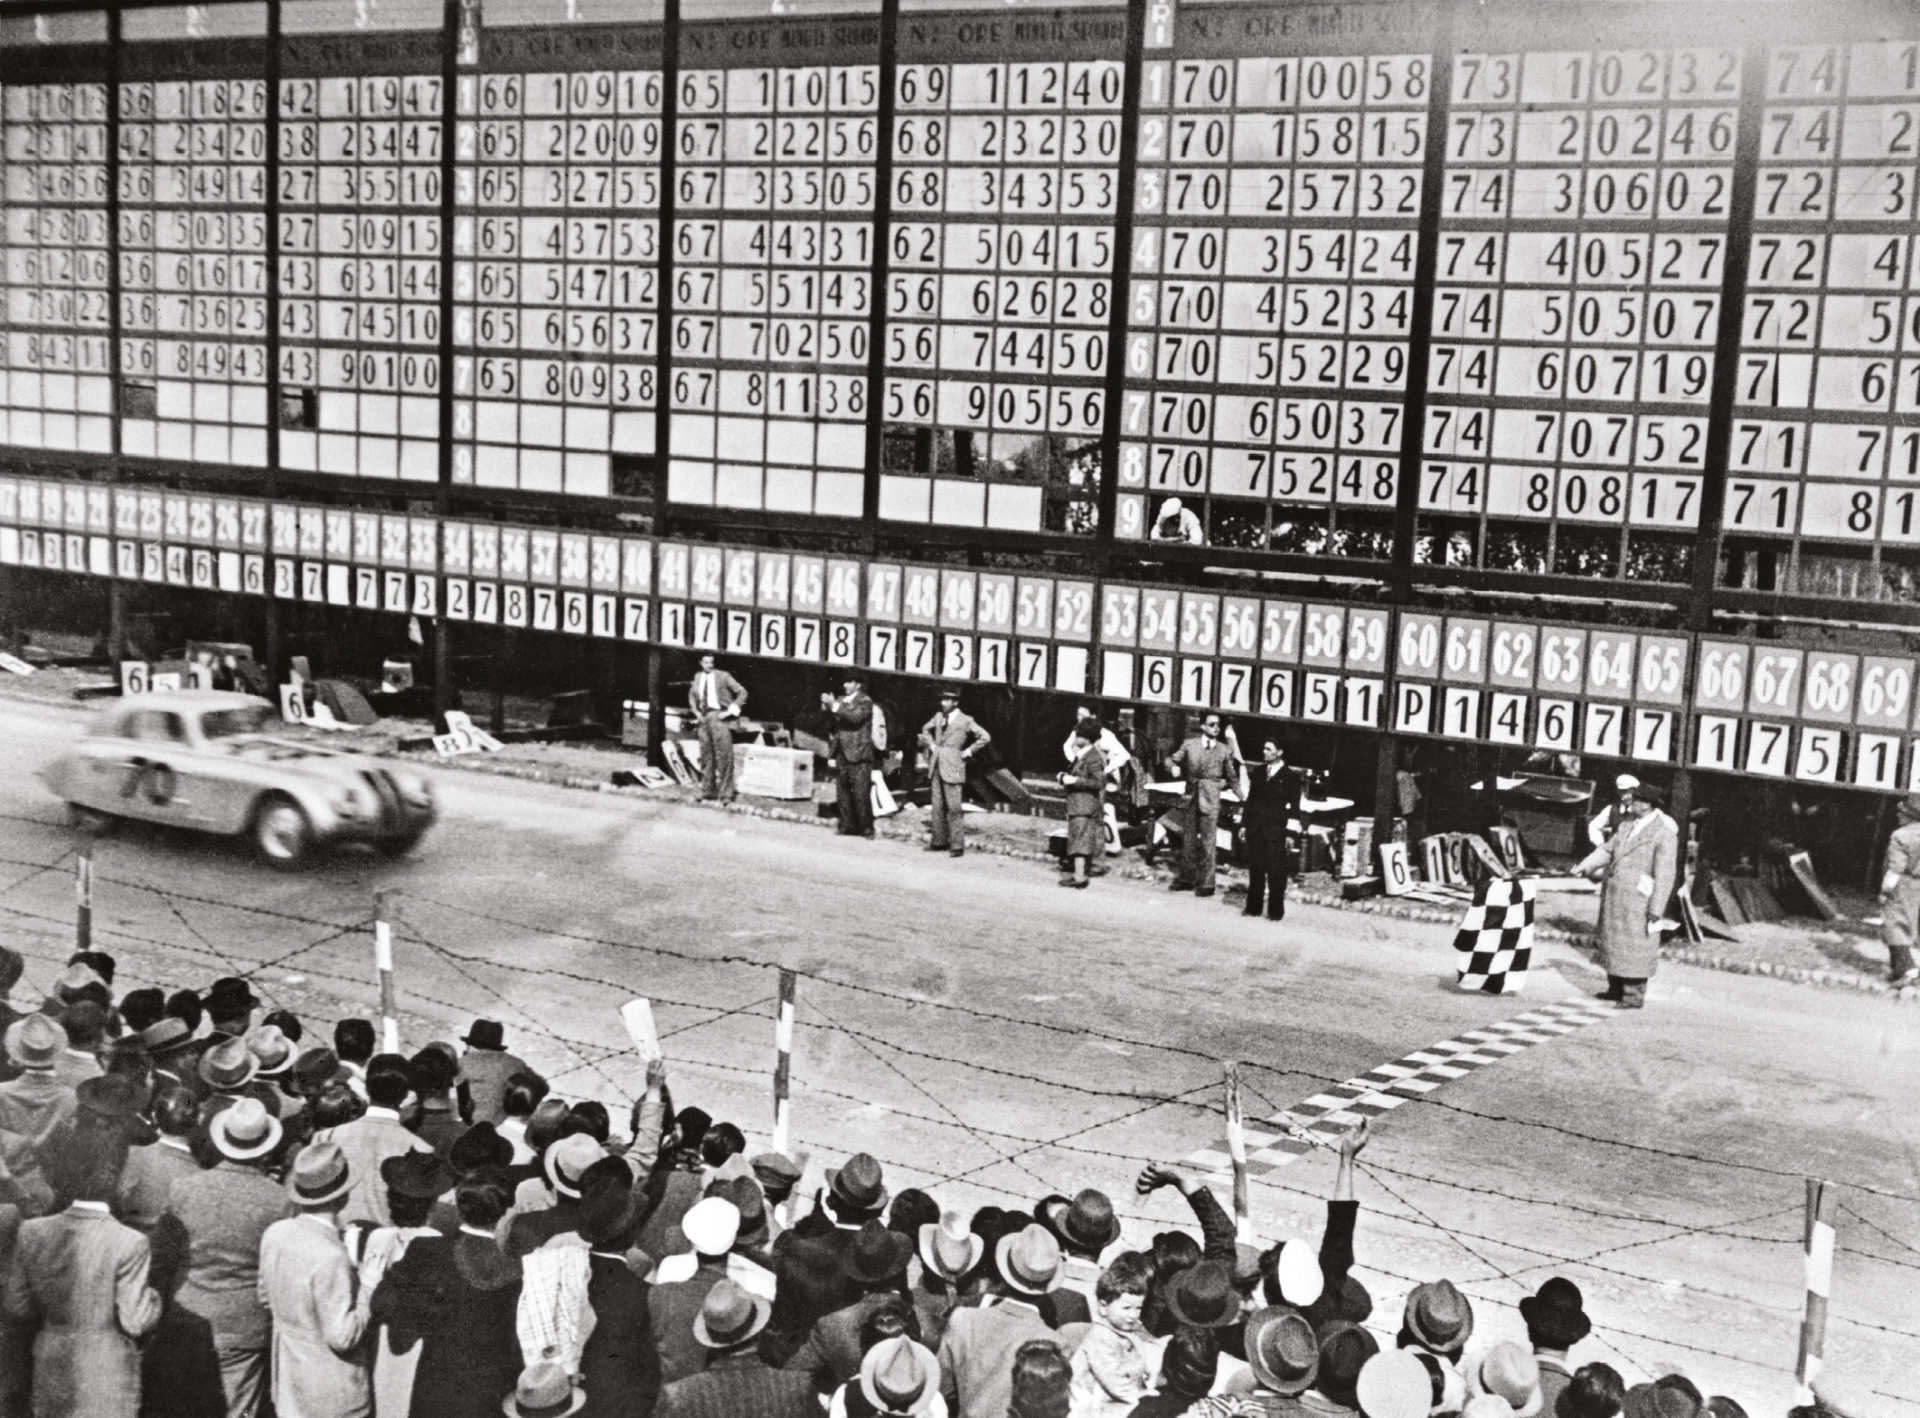 Moment of victory, with an unexcited flag waver. An Alfa win had been expected